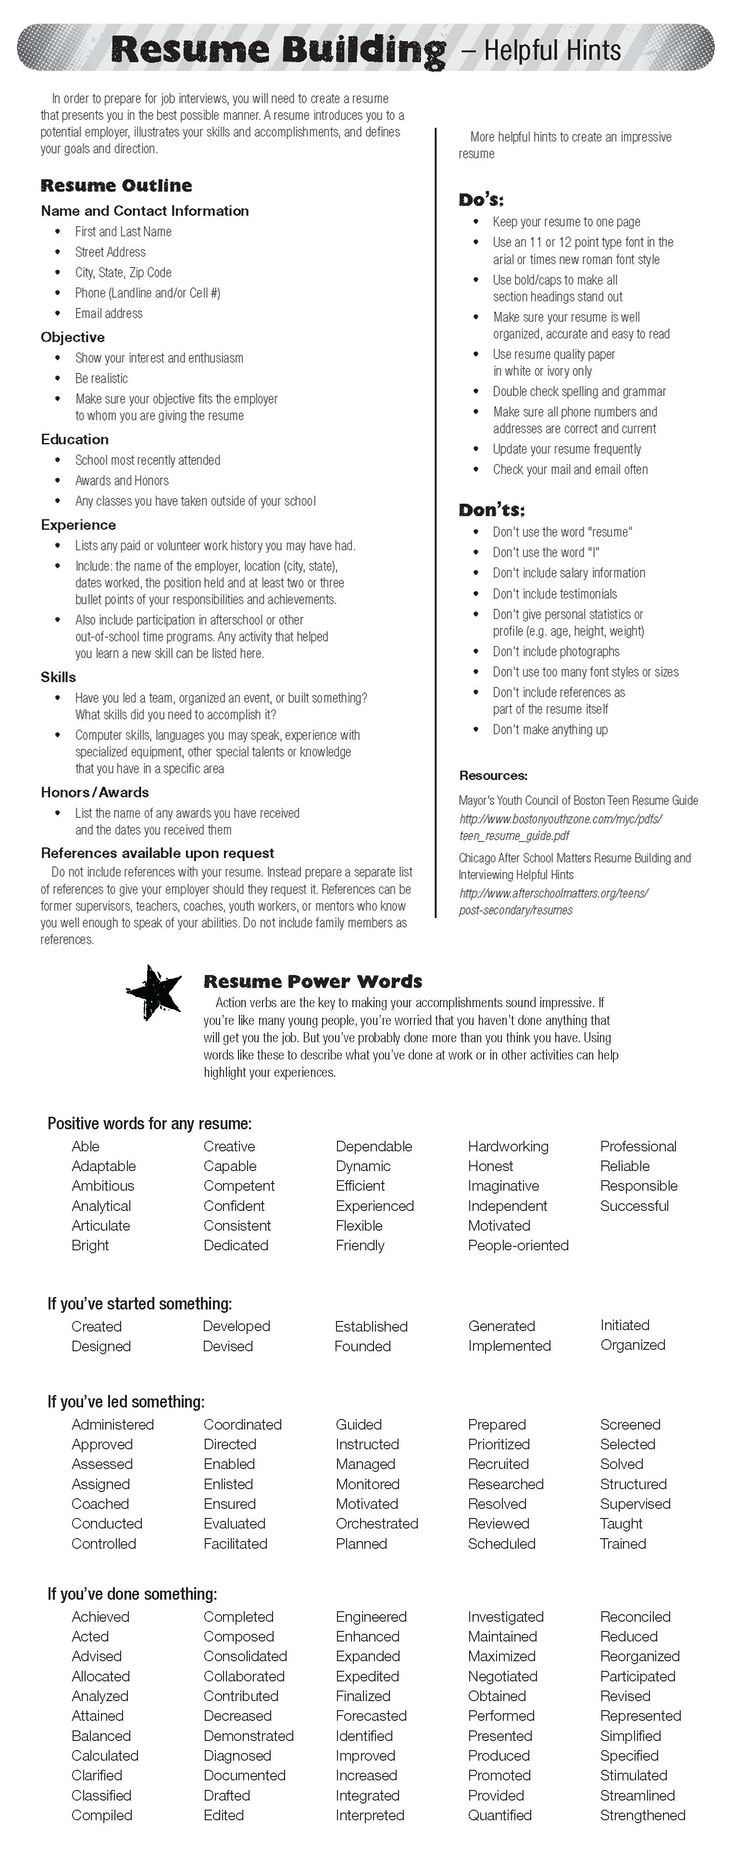 Opposenewapstandardsus  Unique  Ideas About Resume On Pinterest  Cv Format Resume Cv And  With Handsome  Ideas About Resume On Pinterest  Cv Format Resume Cv And Resume Templates With Captivating Help Desk Technician Resume Also Accomplishment Resume In Addition Copy Editor Resume And Enclosed Is My Resume As Well As Resume Reference Sheet Additionally Resume Services Orange County Ca From Pinterestcom With Opposenewapstandardsus  Handsome  Ideas About Resume On Pinterest  Cv Format Resume Cv And  With Captivating  Ideas About Resume On Pinterest  Cv Format Resume Cv And Resume Templates And Unique Help Desk Technician Resume Also Accomplishment Resume In Addition Copy Editor Resume From Pinterestcom